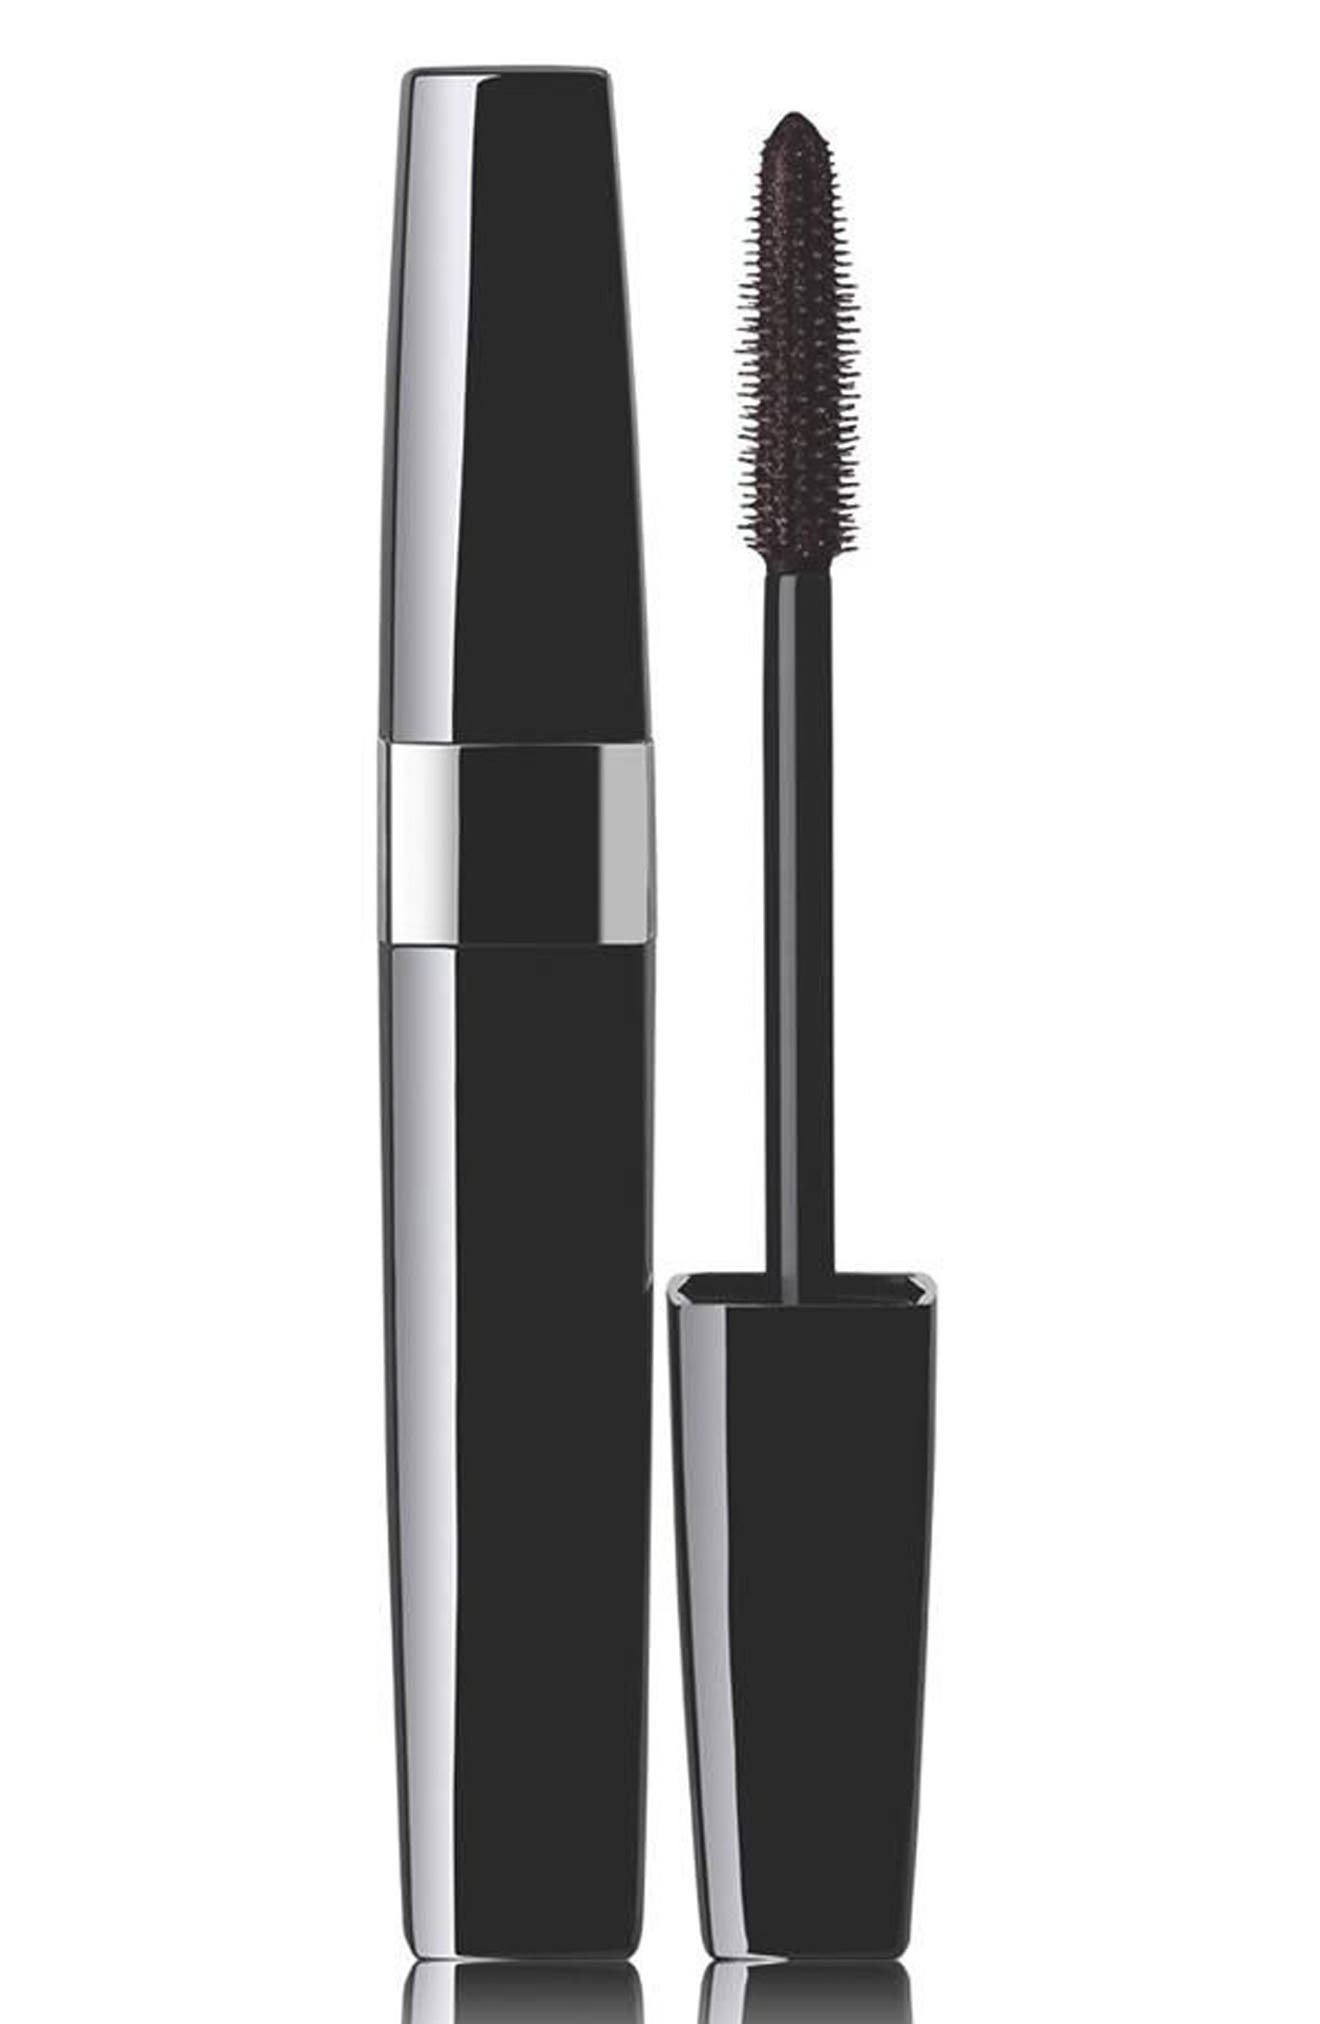 INIMITABLE INTENSE Mascara Multi-Dimensionnel Sophistiqué,                             Main thumbnail 1, color,                             20 Brun